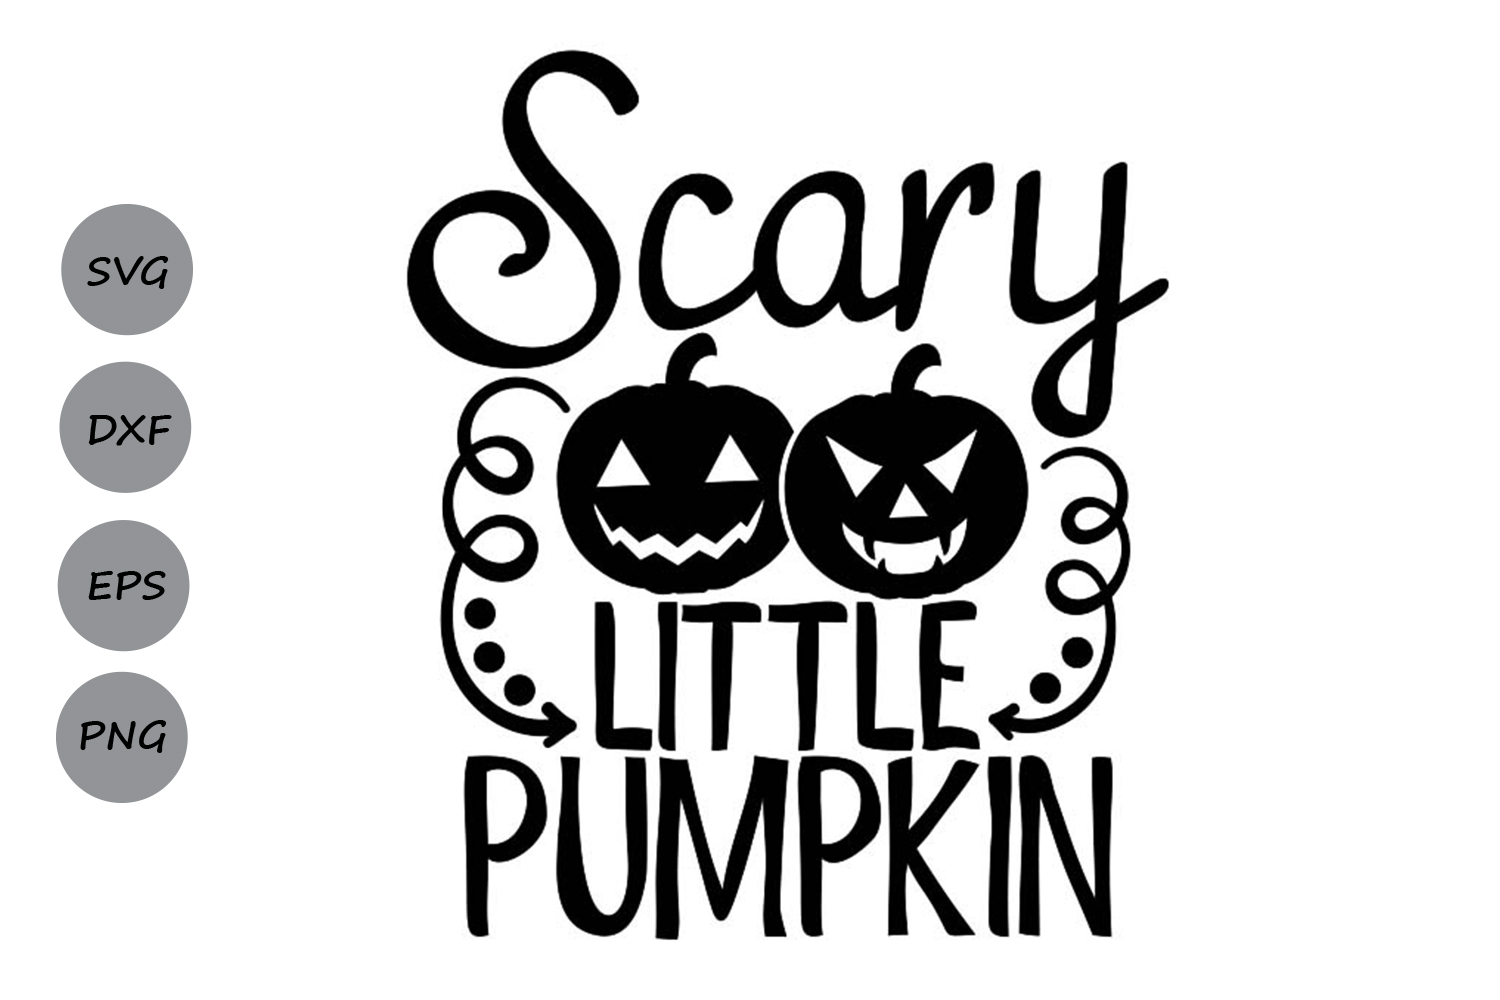 Download Free Scary Little Pumpkin Graphic By Cosmosfineart Creative Fabrica for Cricut Explore, Silhouette and other cutting machines.